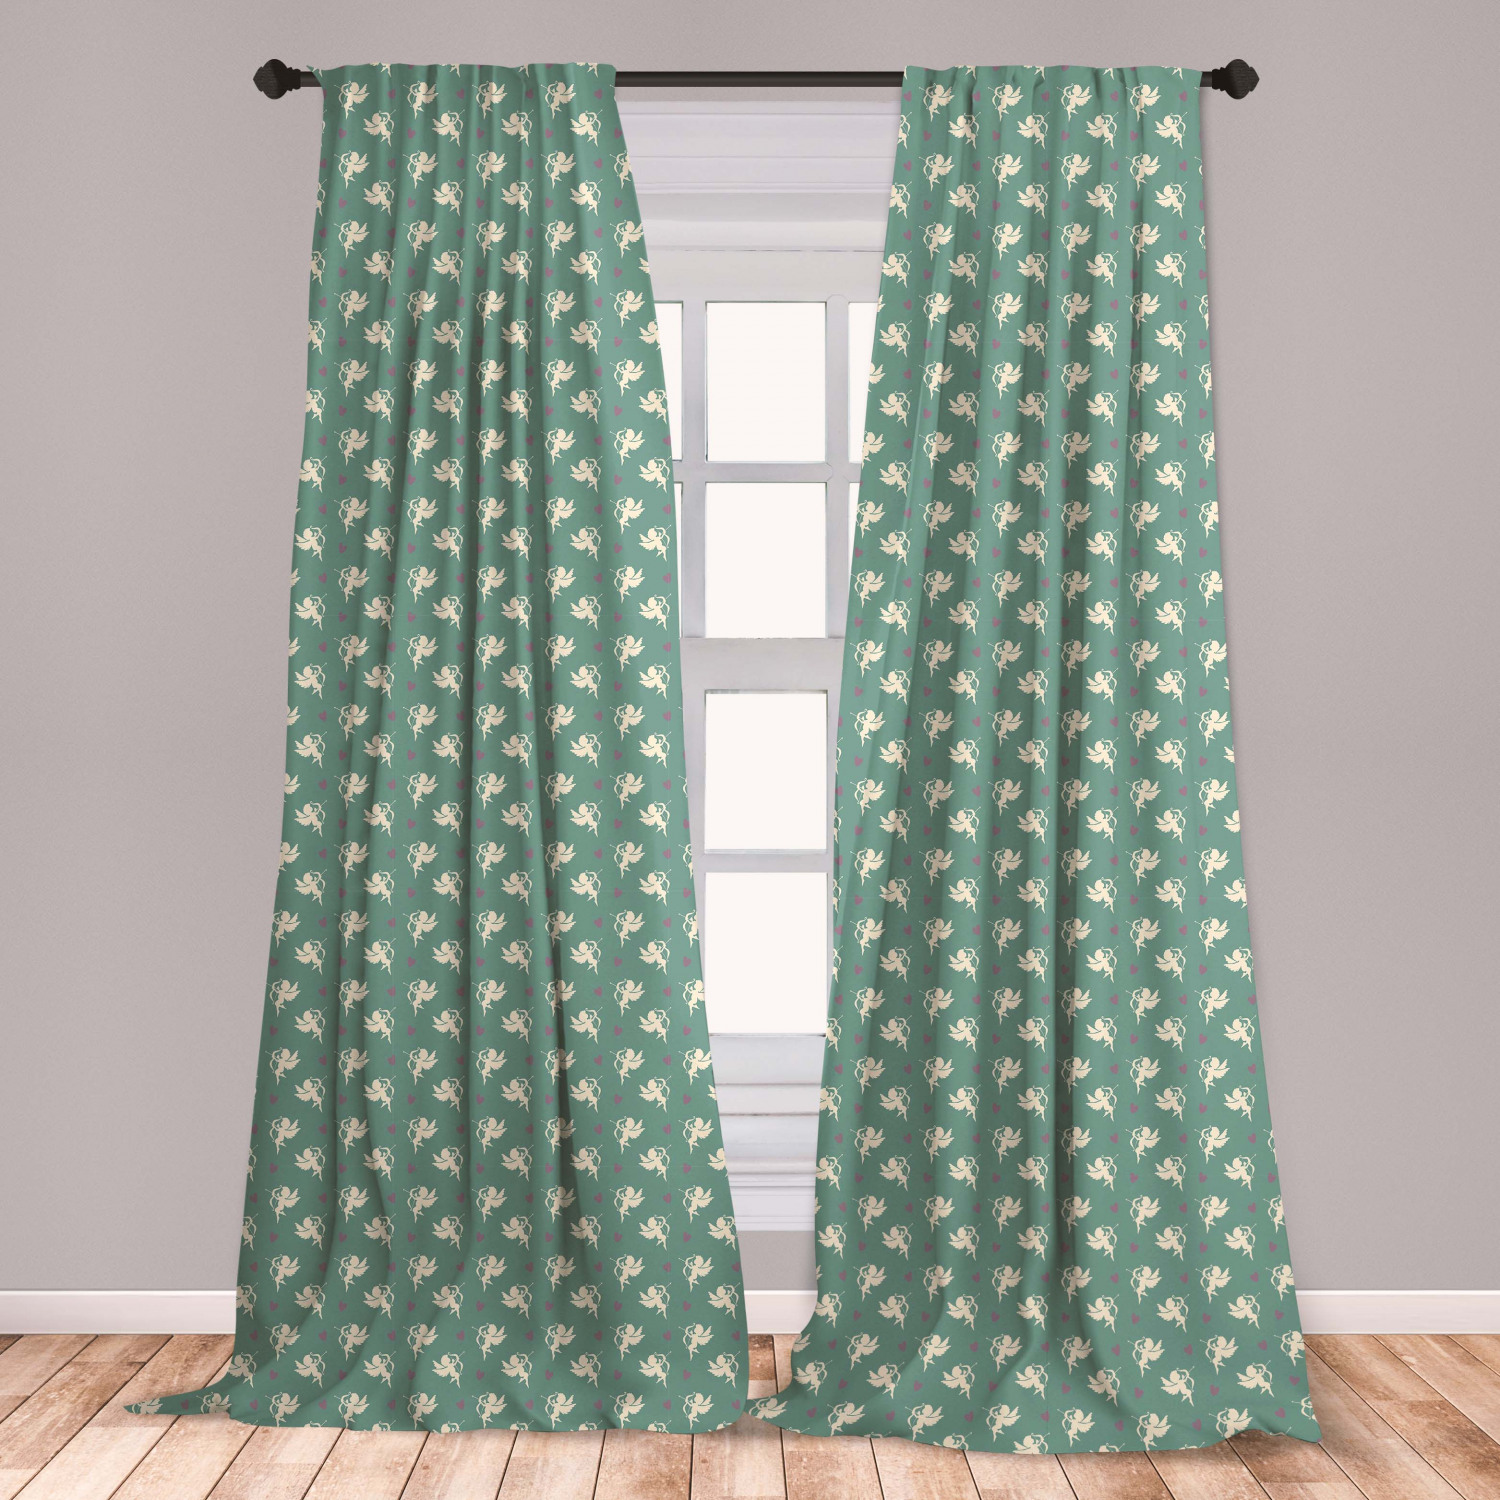 Green Curtains 2 Panels Set Greek Inspired Romance Cupid Silhouette Pattern With Little Hearts Print Window Drapes For Living Room Bedroom Jade Green Purple Cream By Ambesonne Walmart Com Walmart Com